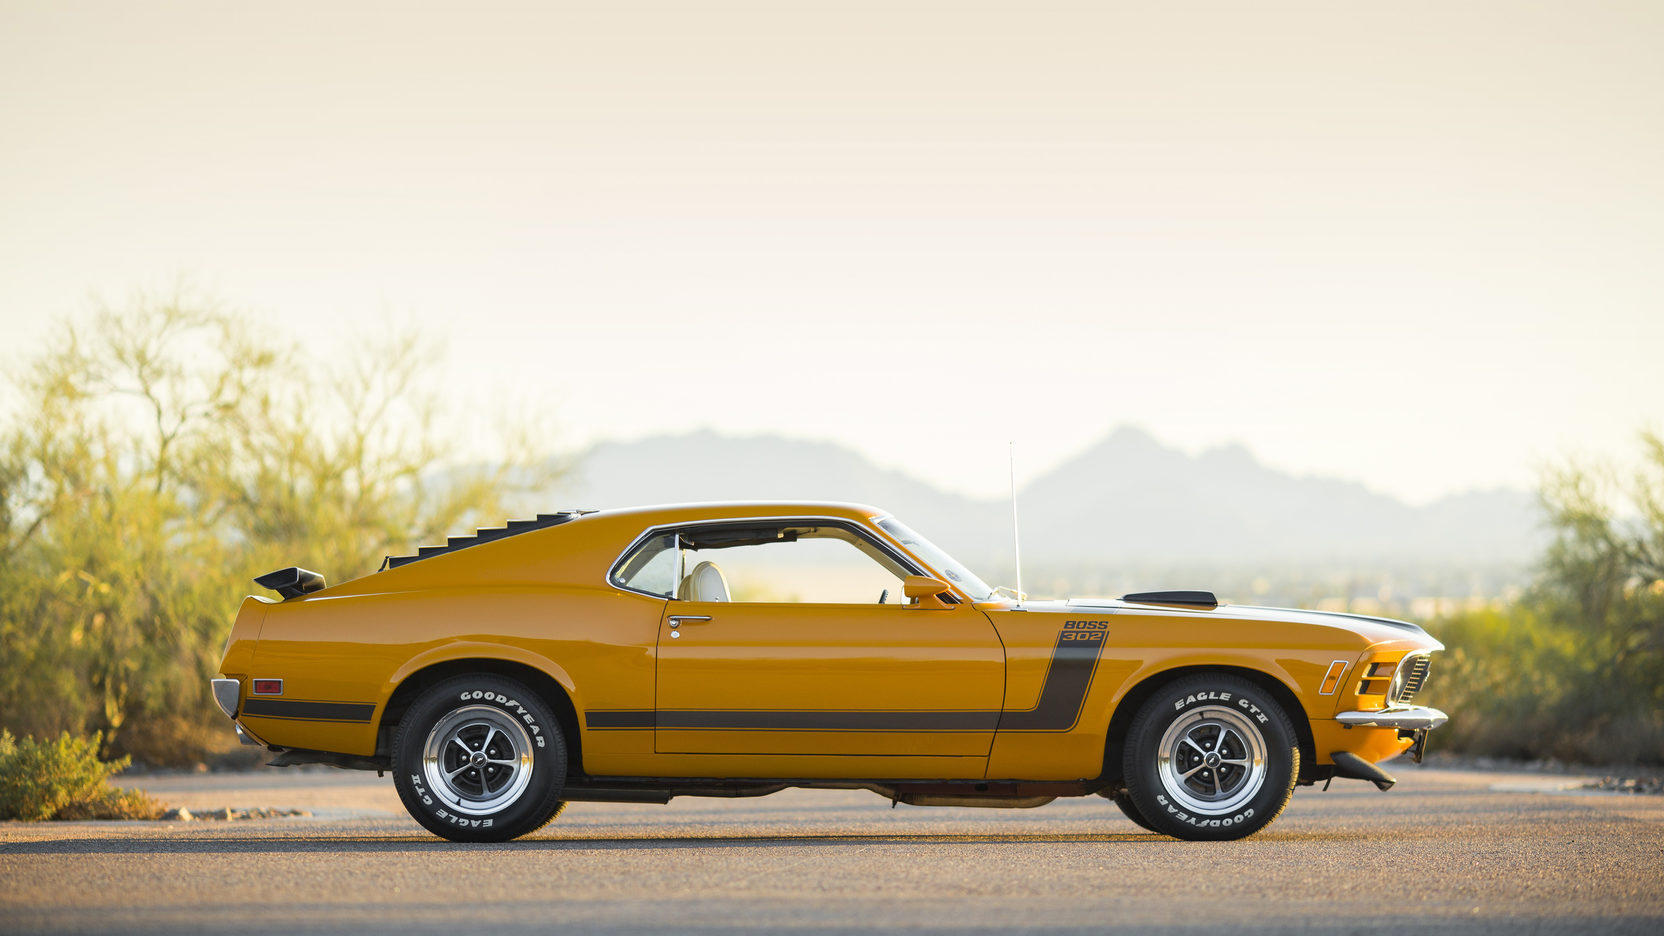 1970 Ford Mustang Boss 302 side profile